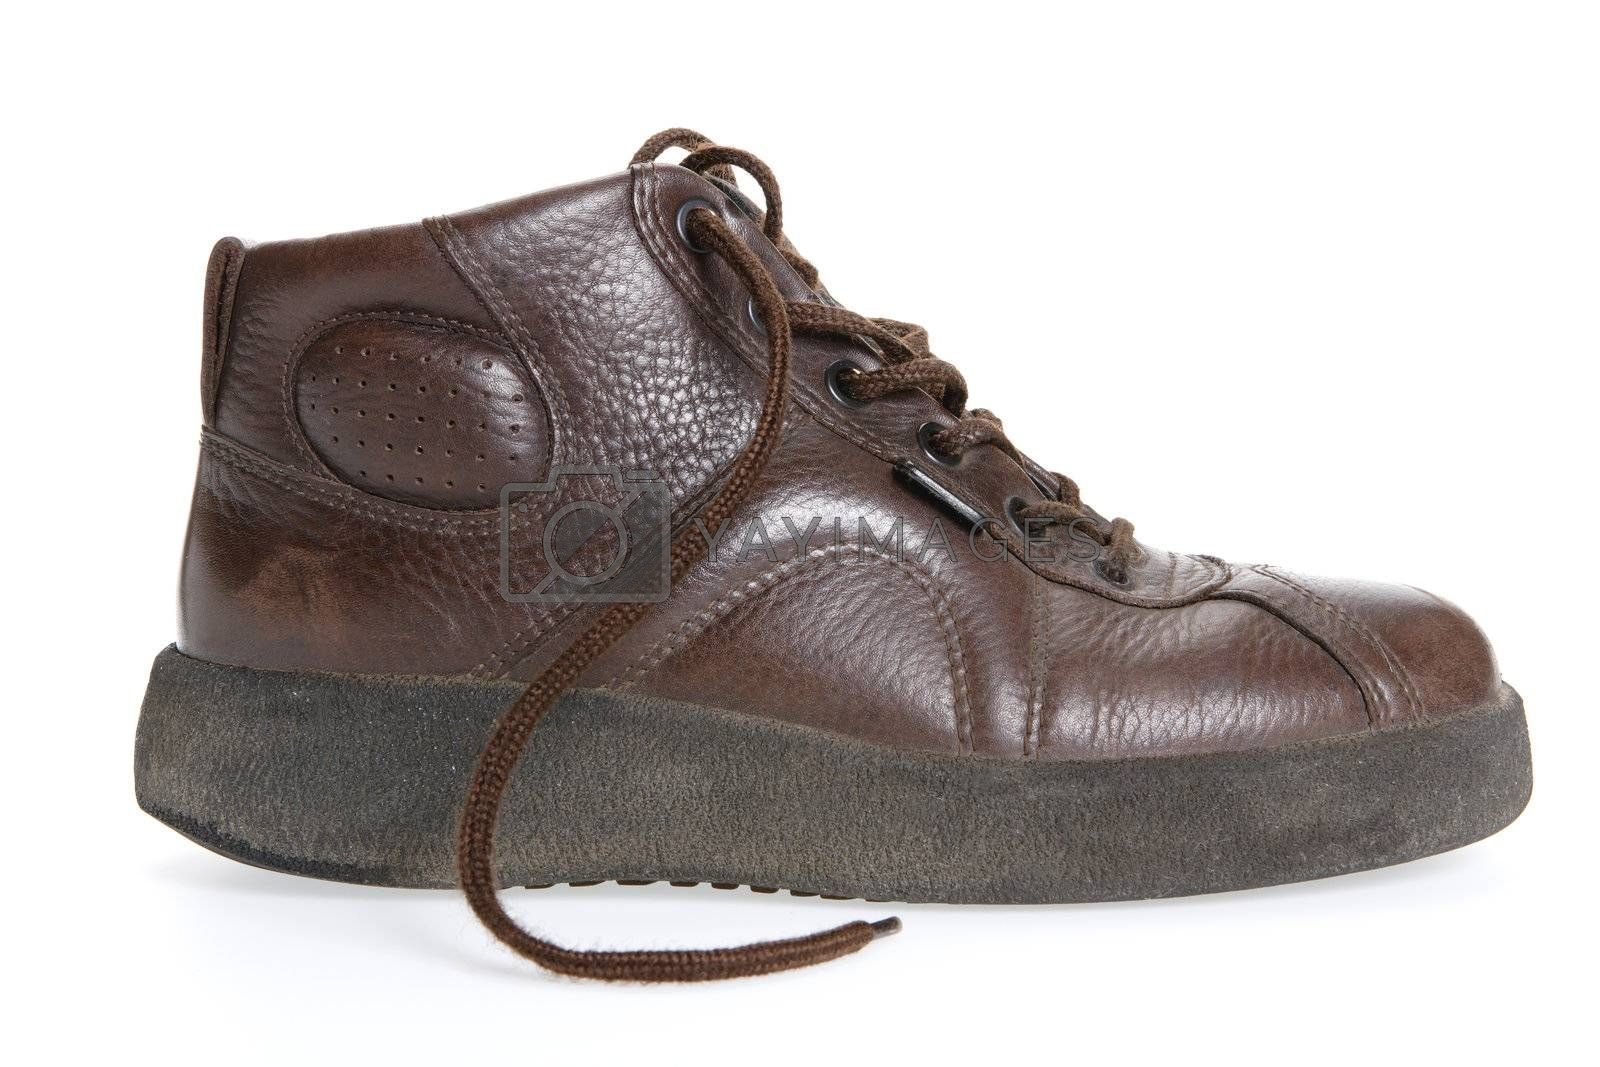 Royalty free image of Old Shoe by Astroid